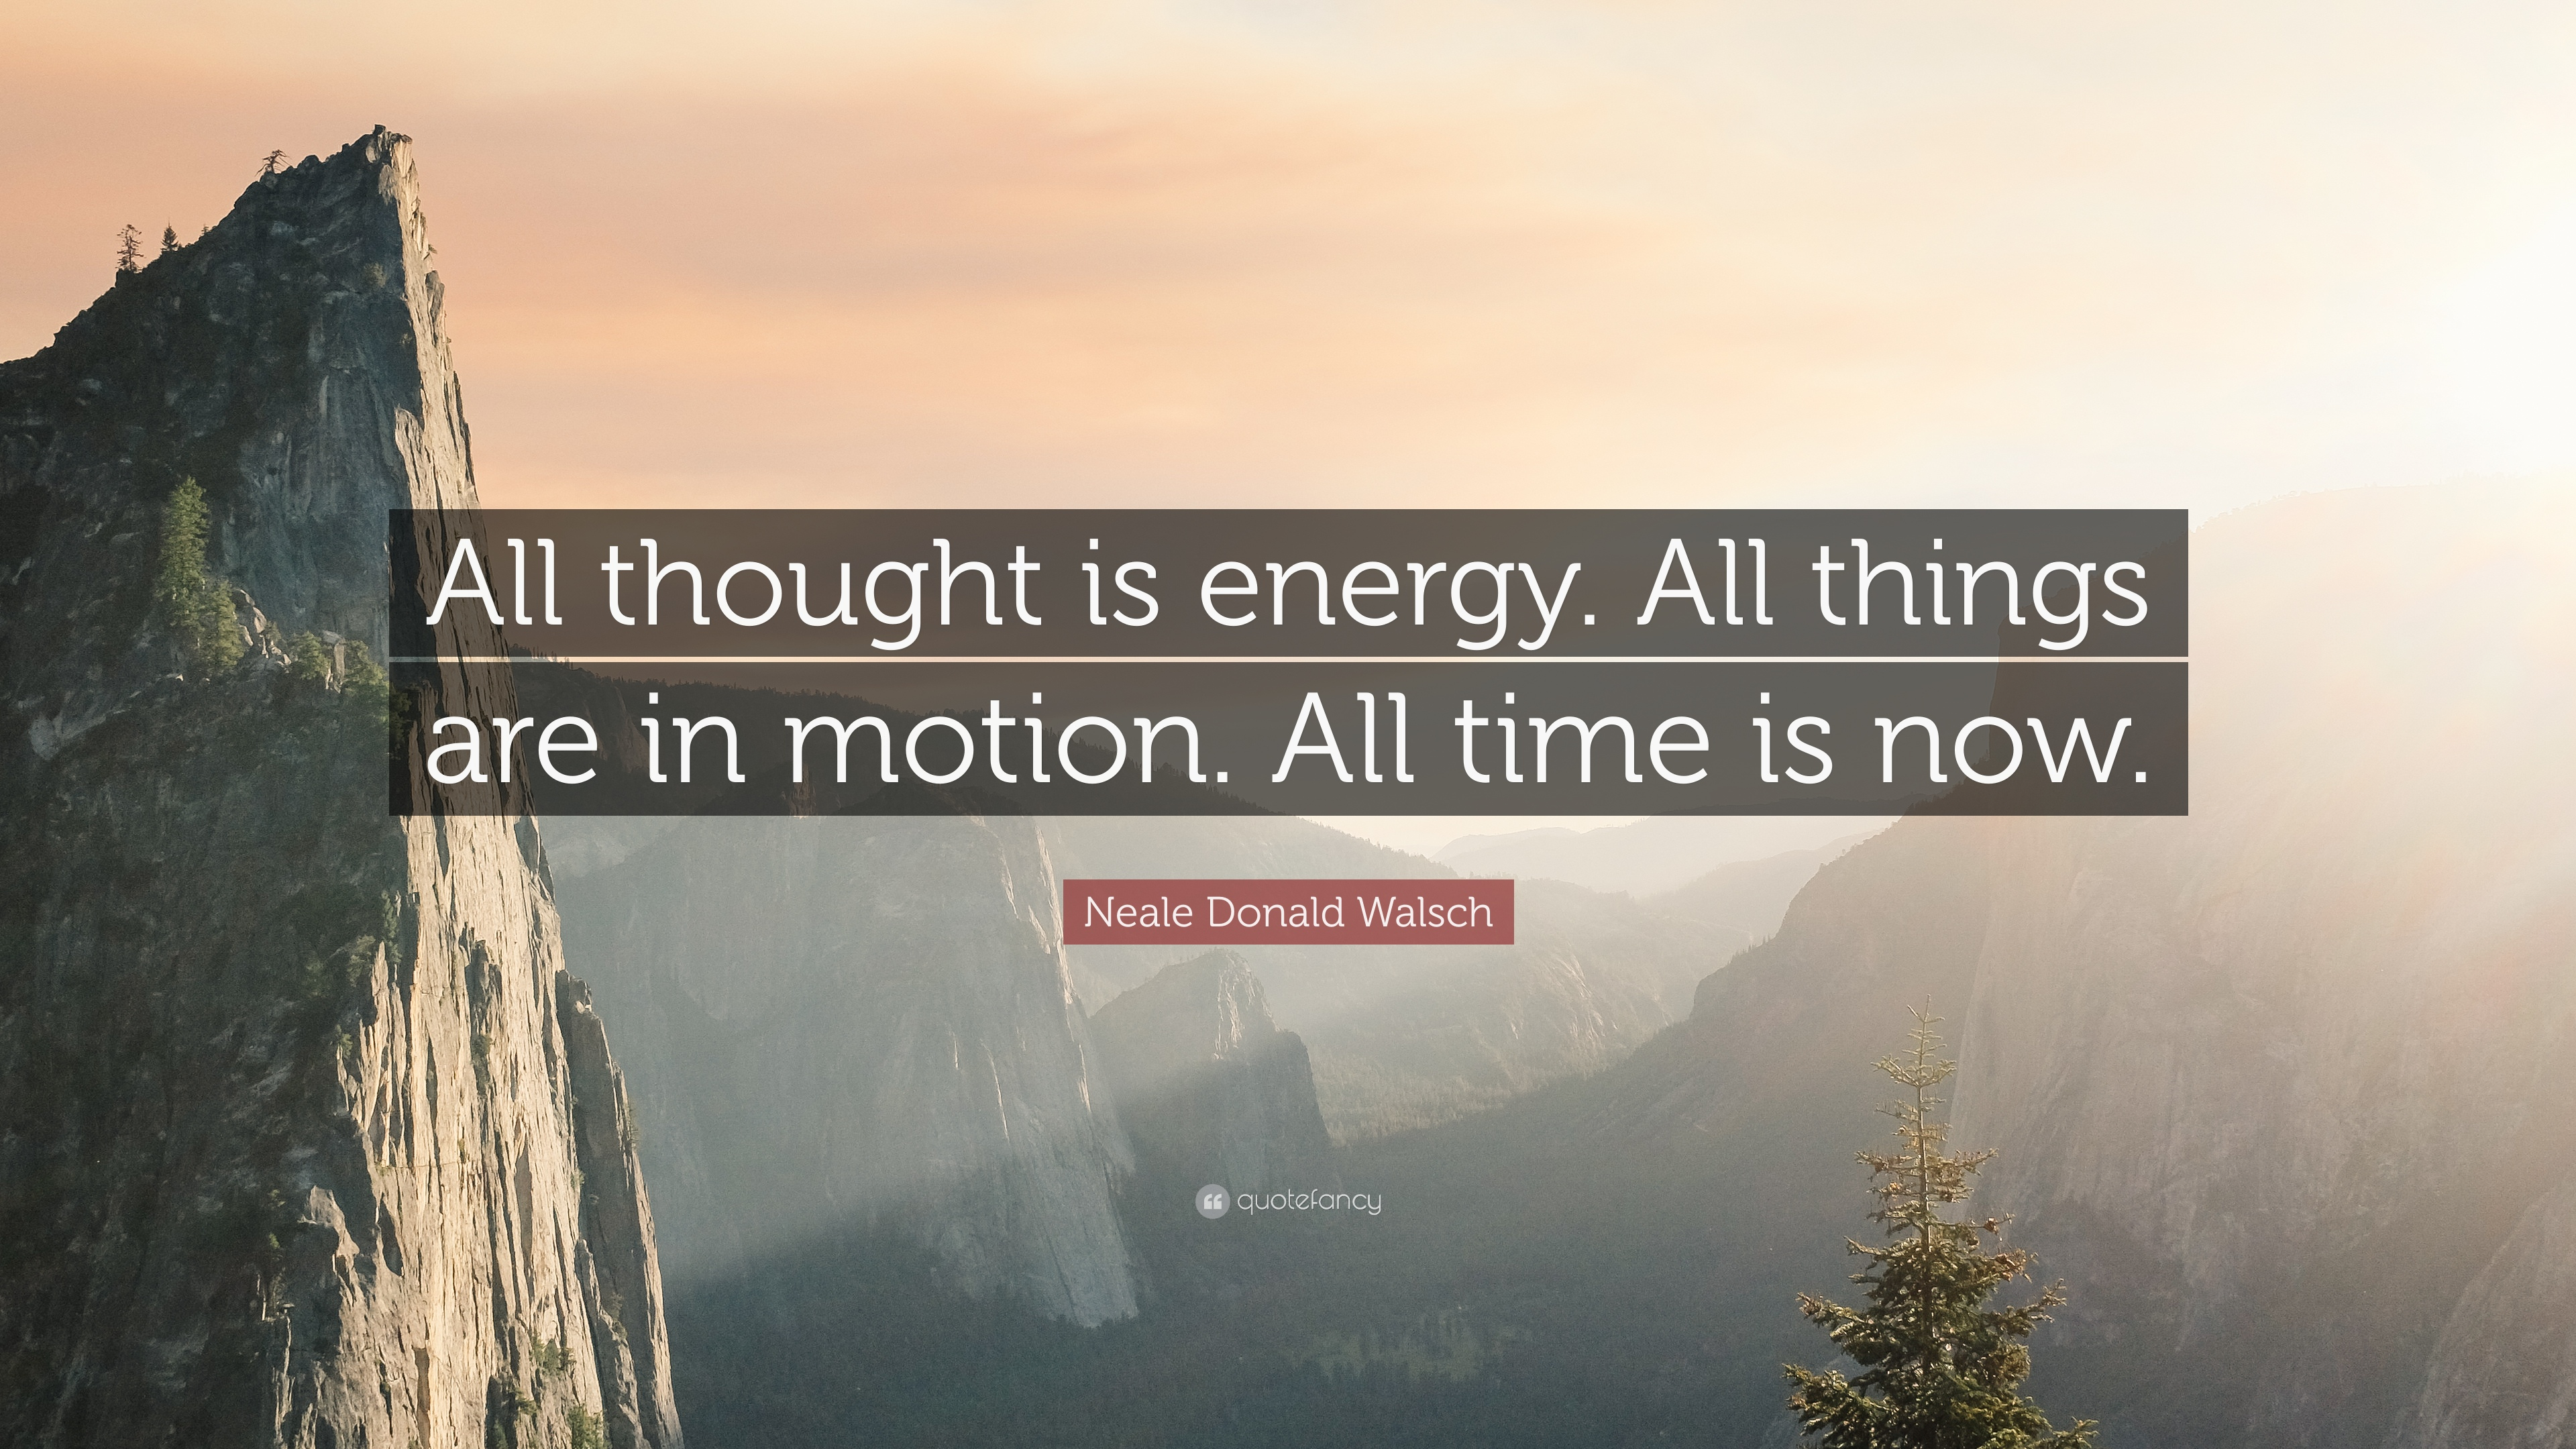 neale donald walsch quote all thought is energy all things are in